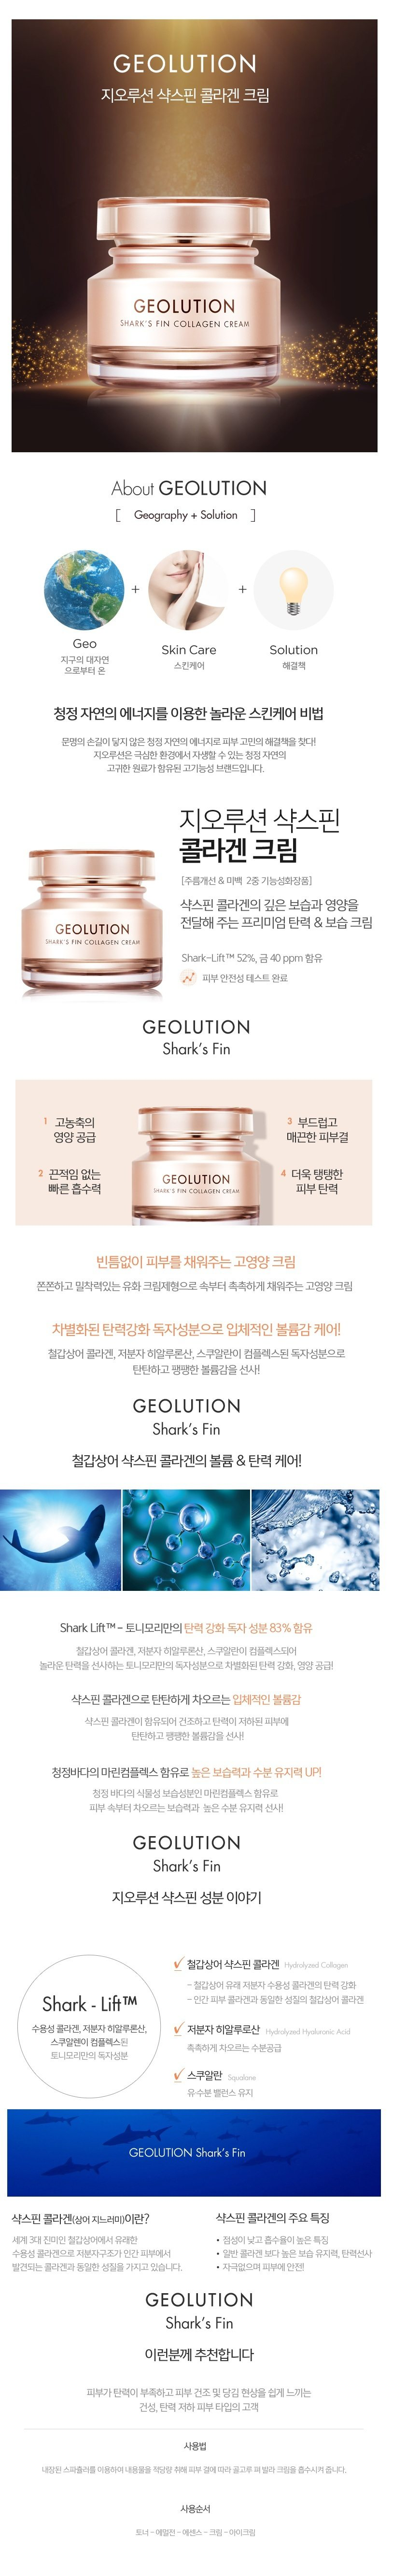 Tony Moly Geolution Shark's Fin Collagen Toner and Cream korean cosmetic skincare product online shop malaysia italy germany1